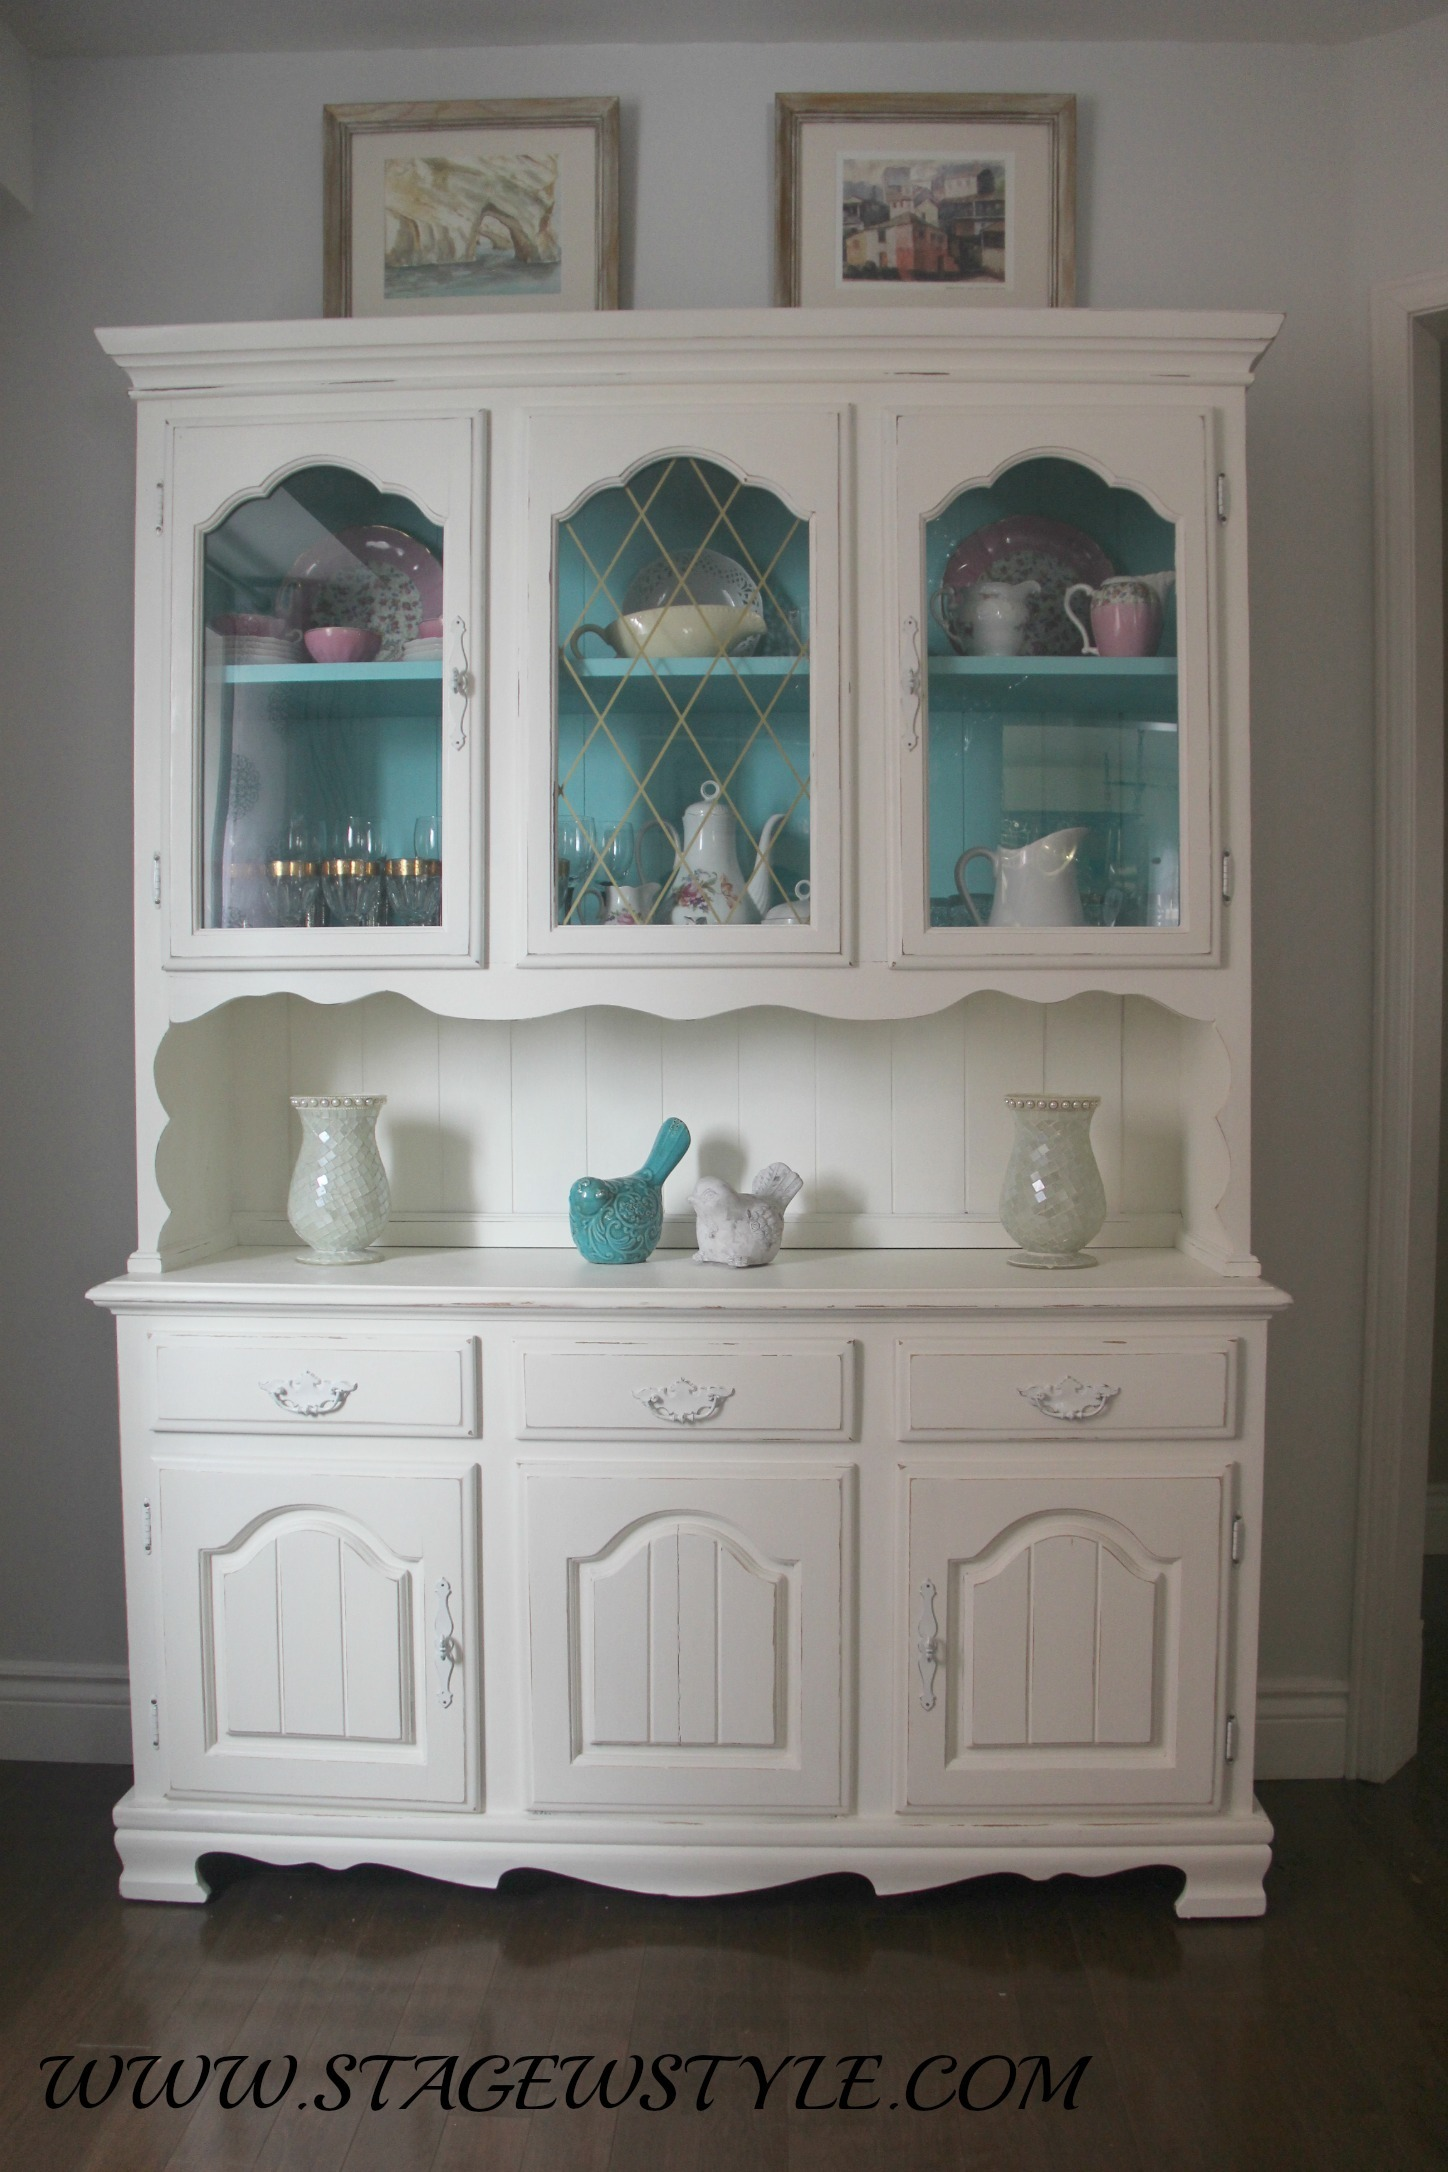 China cabinet makeover - stage with style -DIY ...